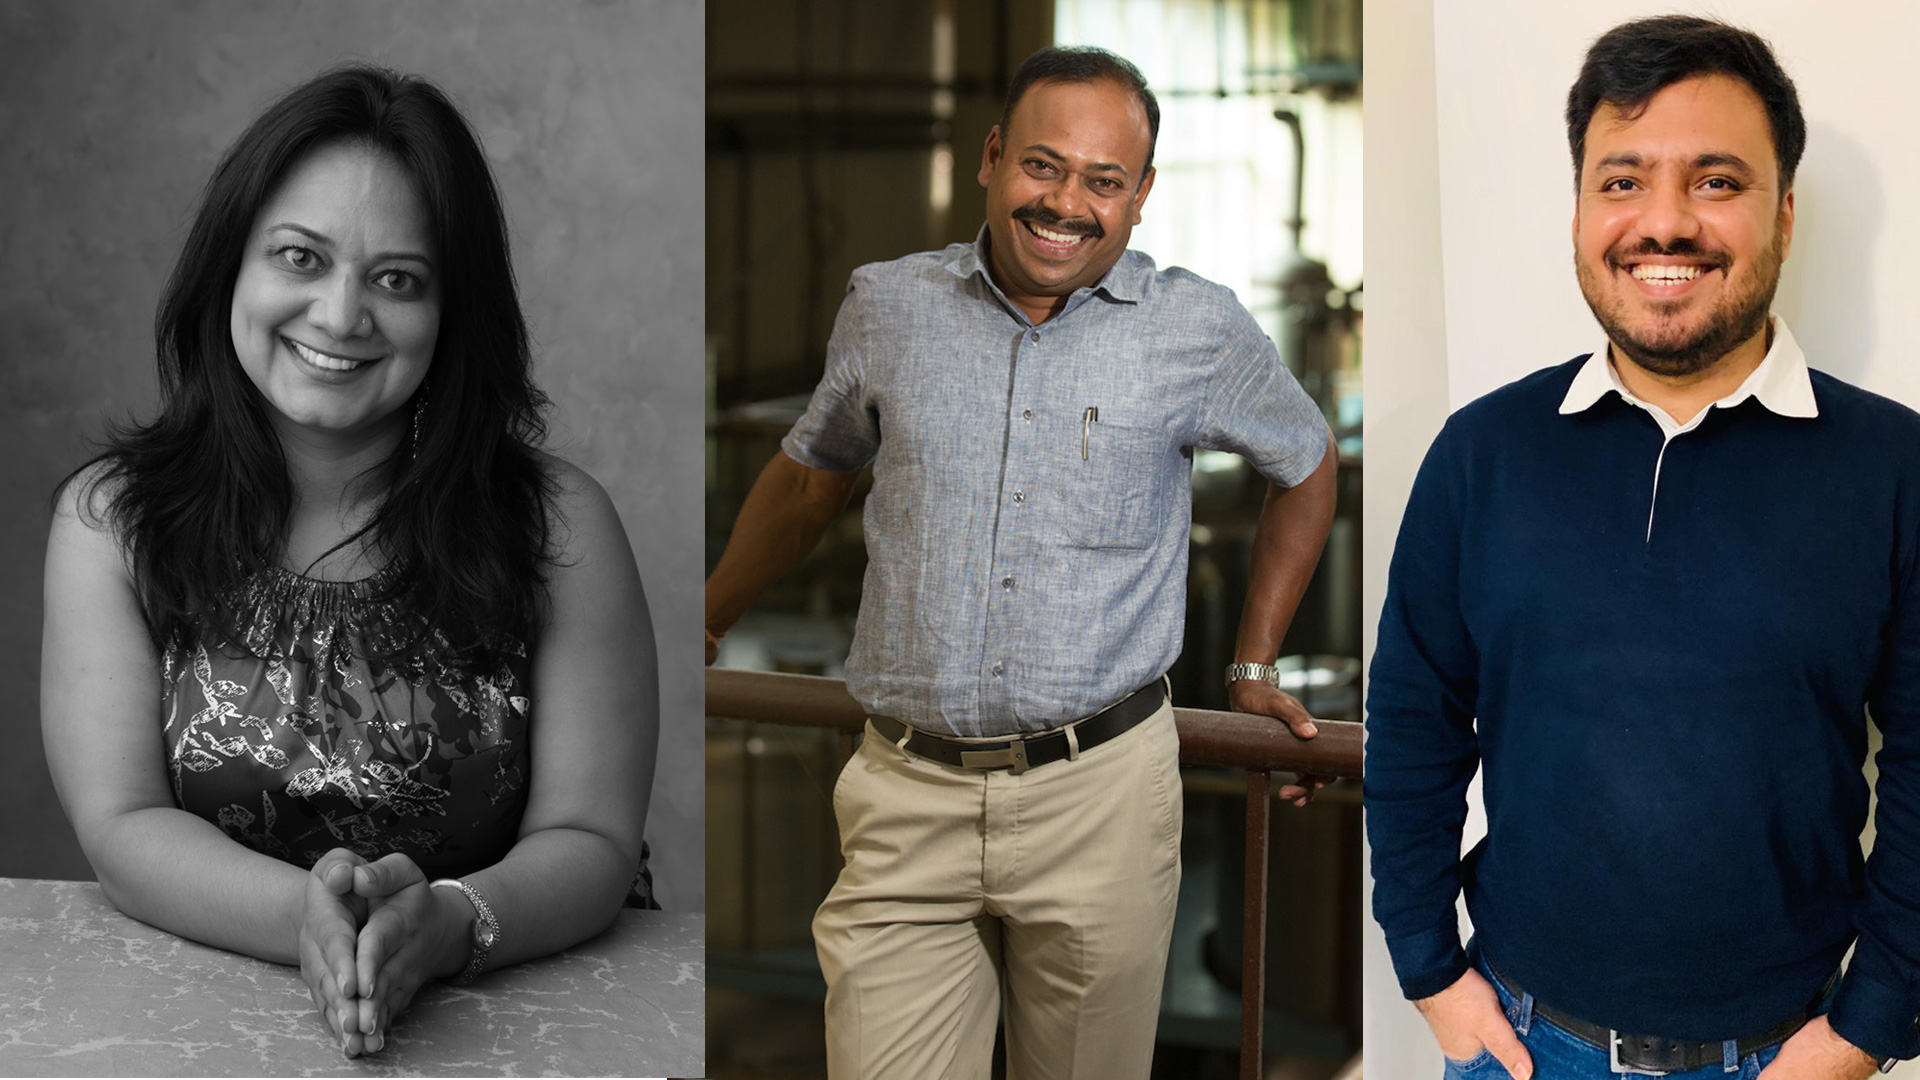 The NOLADrinks Show – Spirits of India – Nov20Ep2 – Monica Badlani of Somrus Cream Liqueurs, Ashok Chokalingham of Amrut Distilleries, and Vrushab Habib of Heritage Spirits.